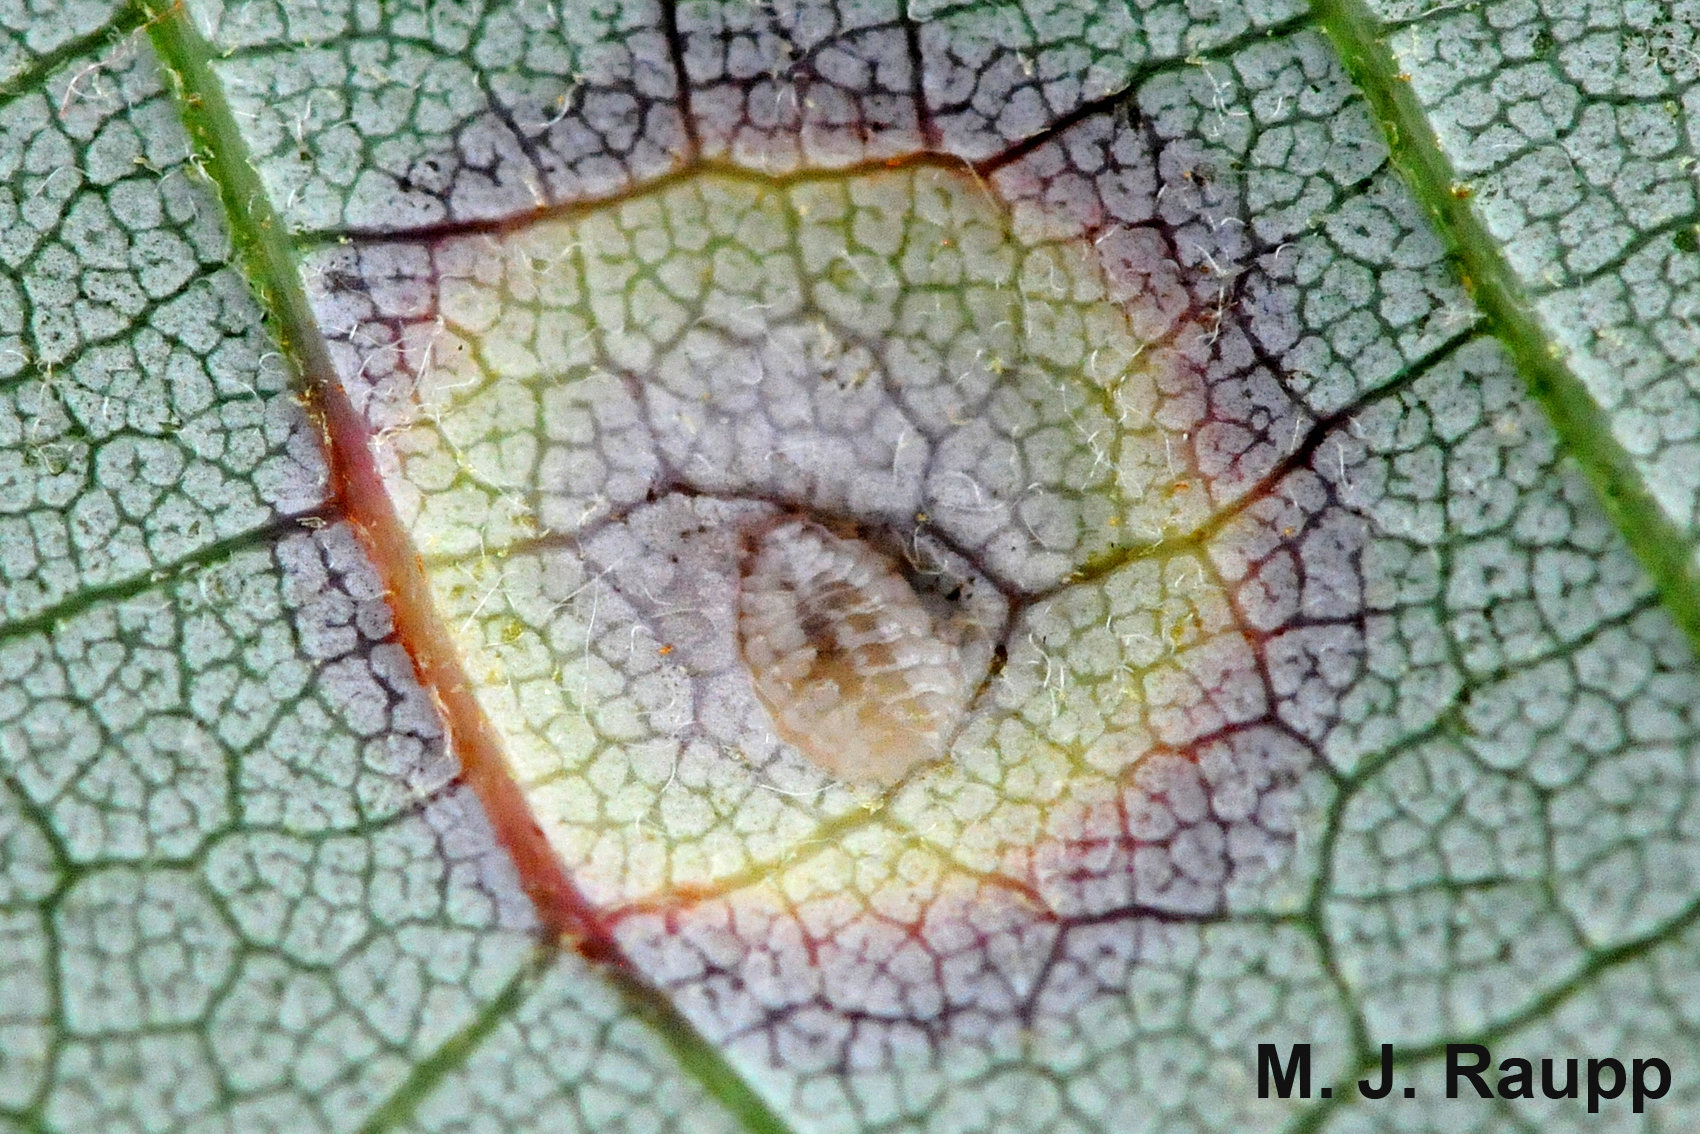 At the center of each eyespot a small translucent fly larva feeds.